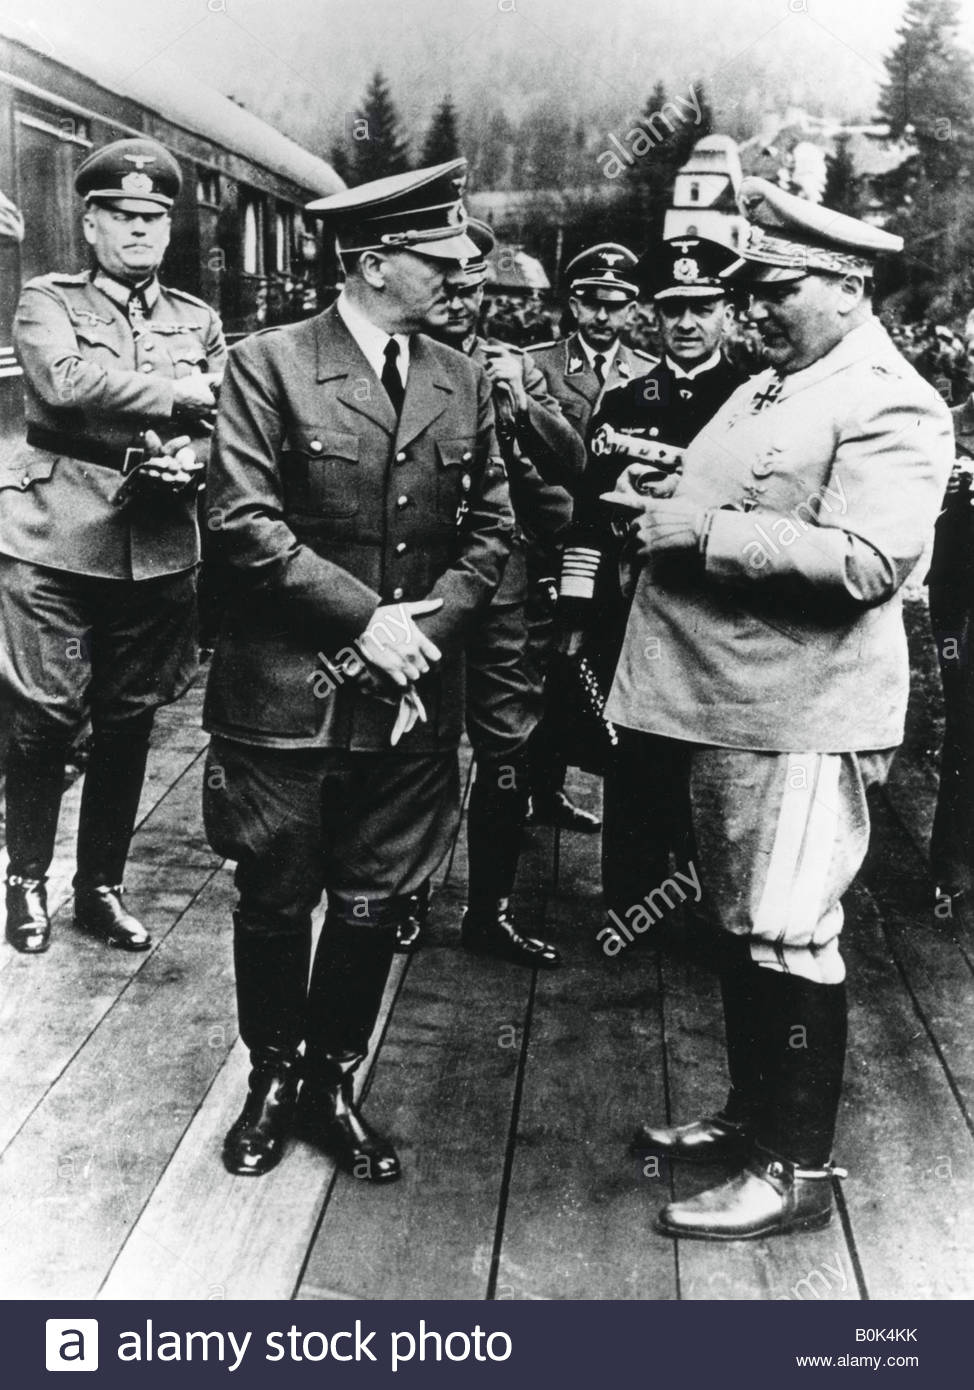 an introduction to the history of the nazi party in germany in the 20th century On 1 september 1939 germany invaded poland, kicking off the 20th century's second pan- european conflict this time the war was not greeted with pleasure in berlin, whose people still remembered the hunger years of wwi and the early 1920s.